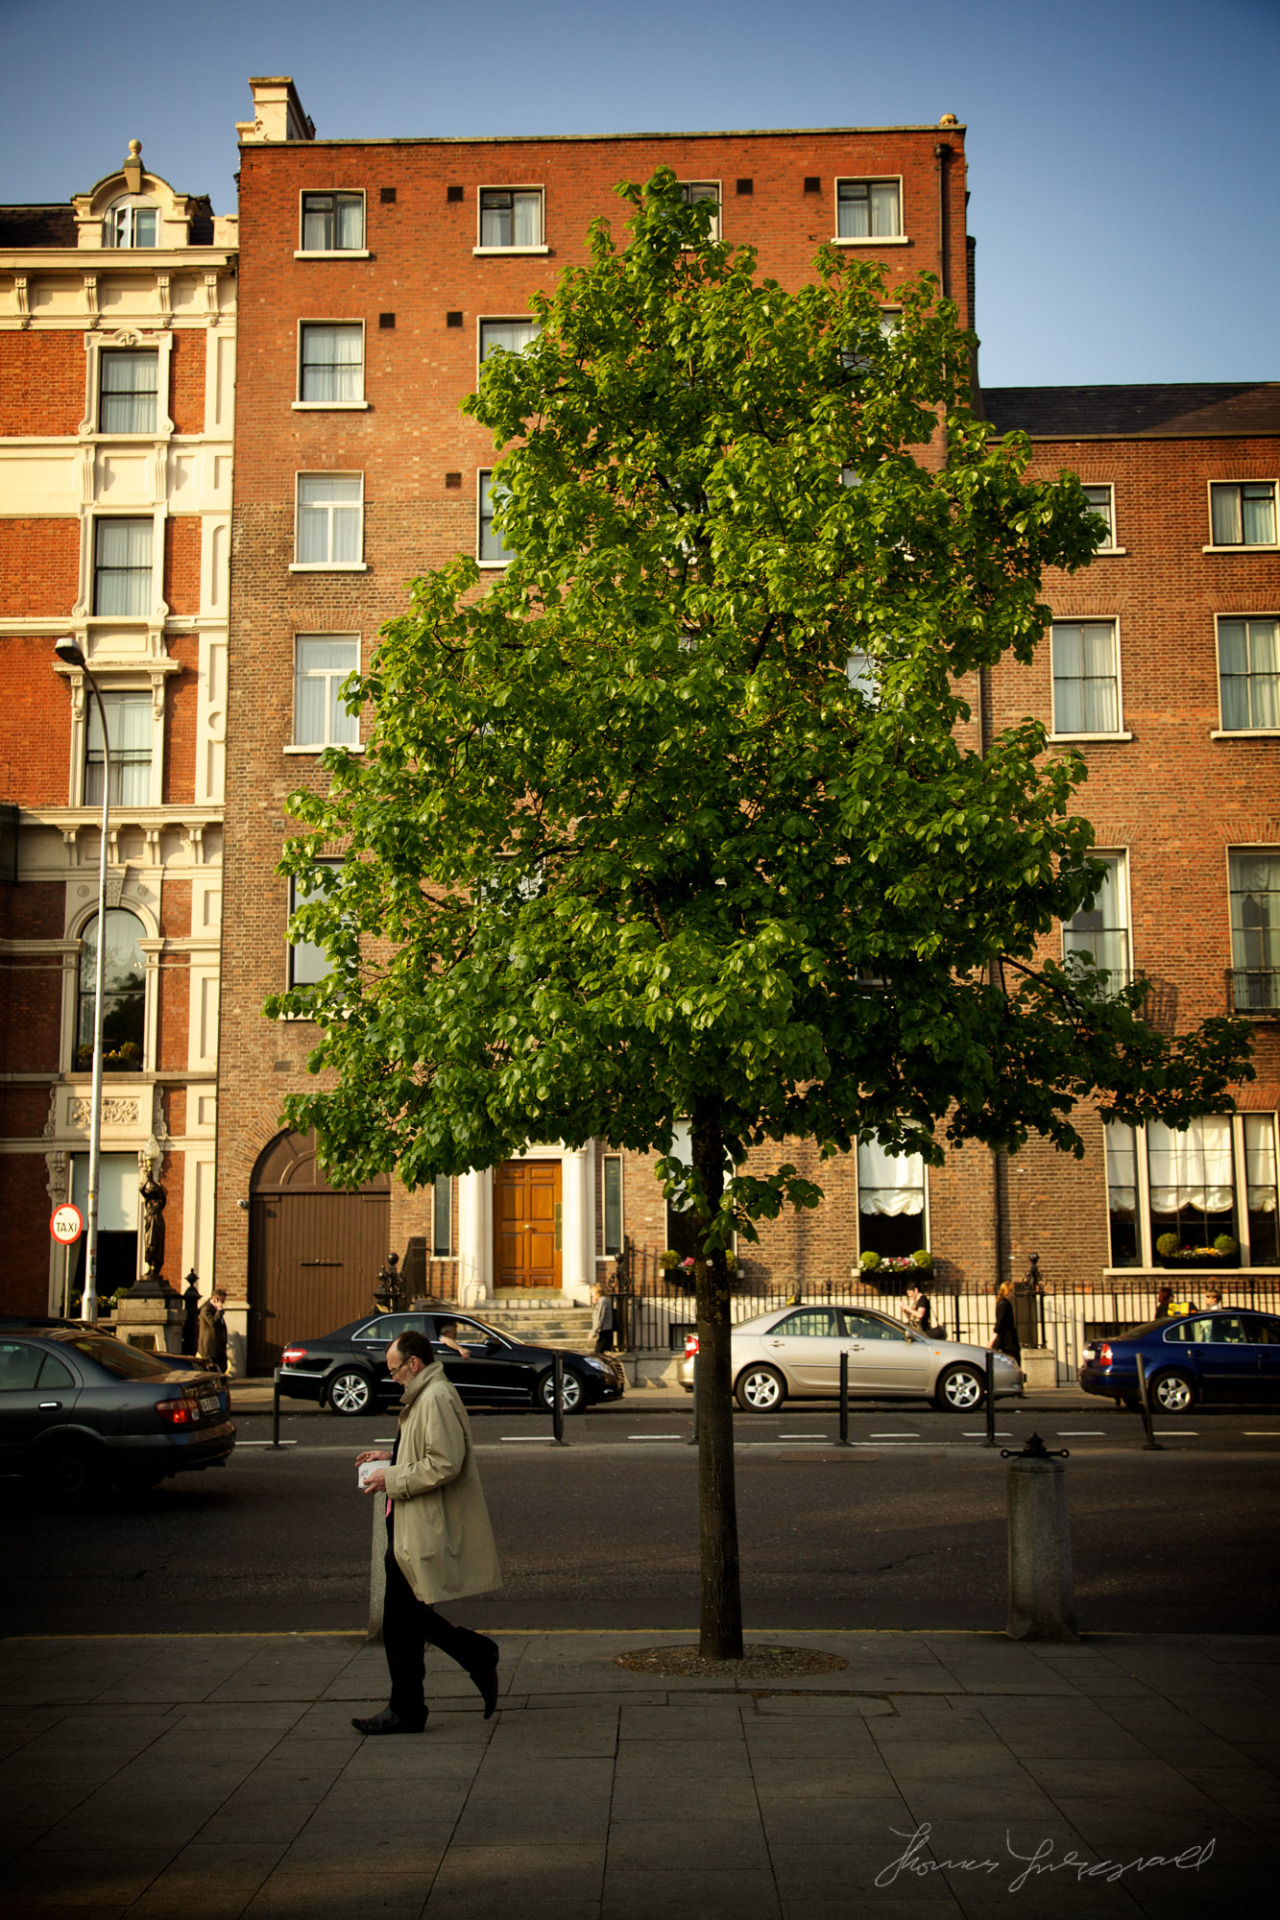 A proud tree by St. Stephen's Green